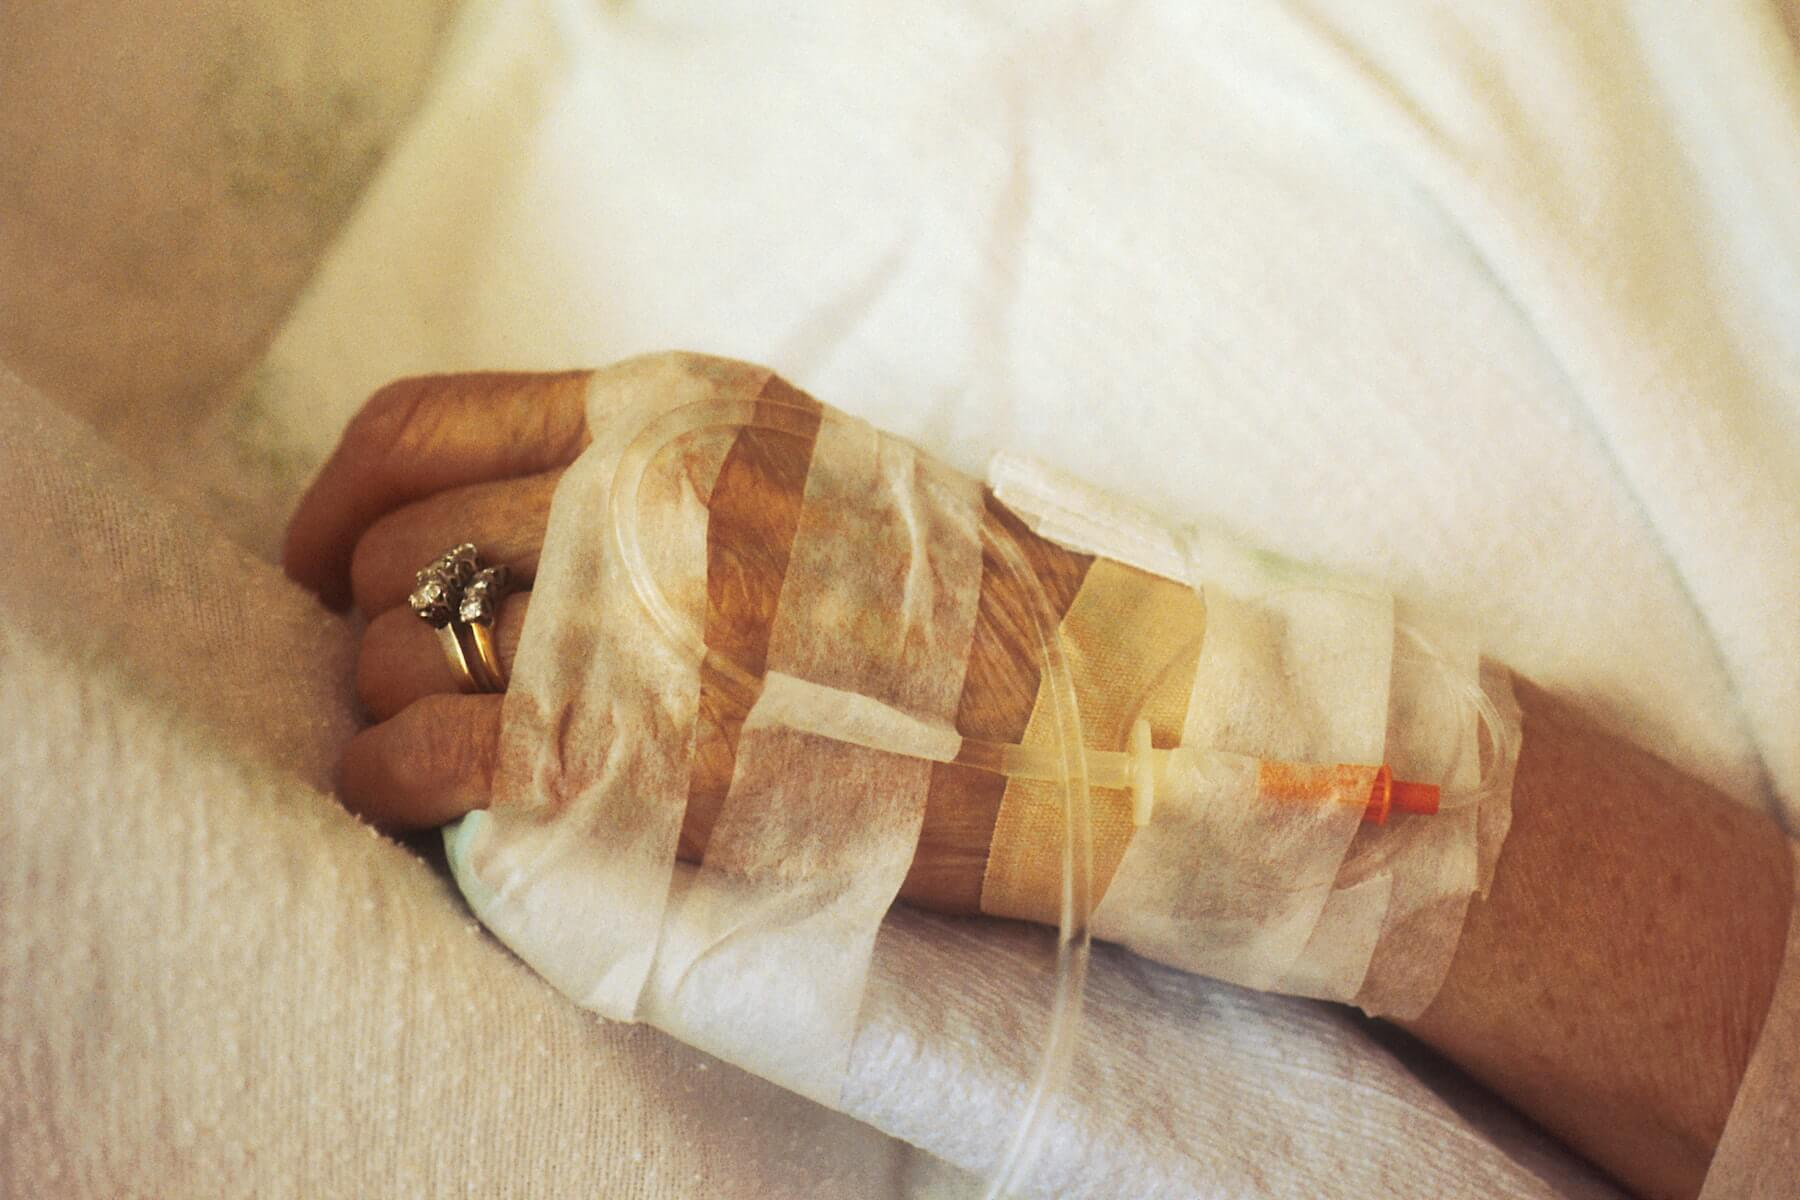 hand of old woman with IV drop attached and wedding ring on finger laying on side of bed hospice nursing